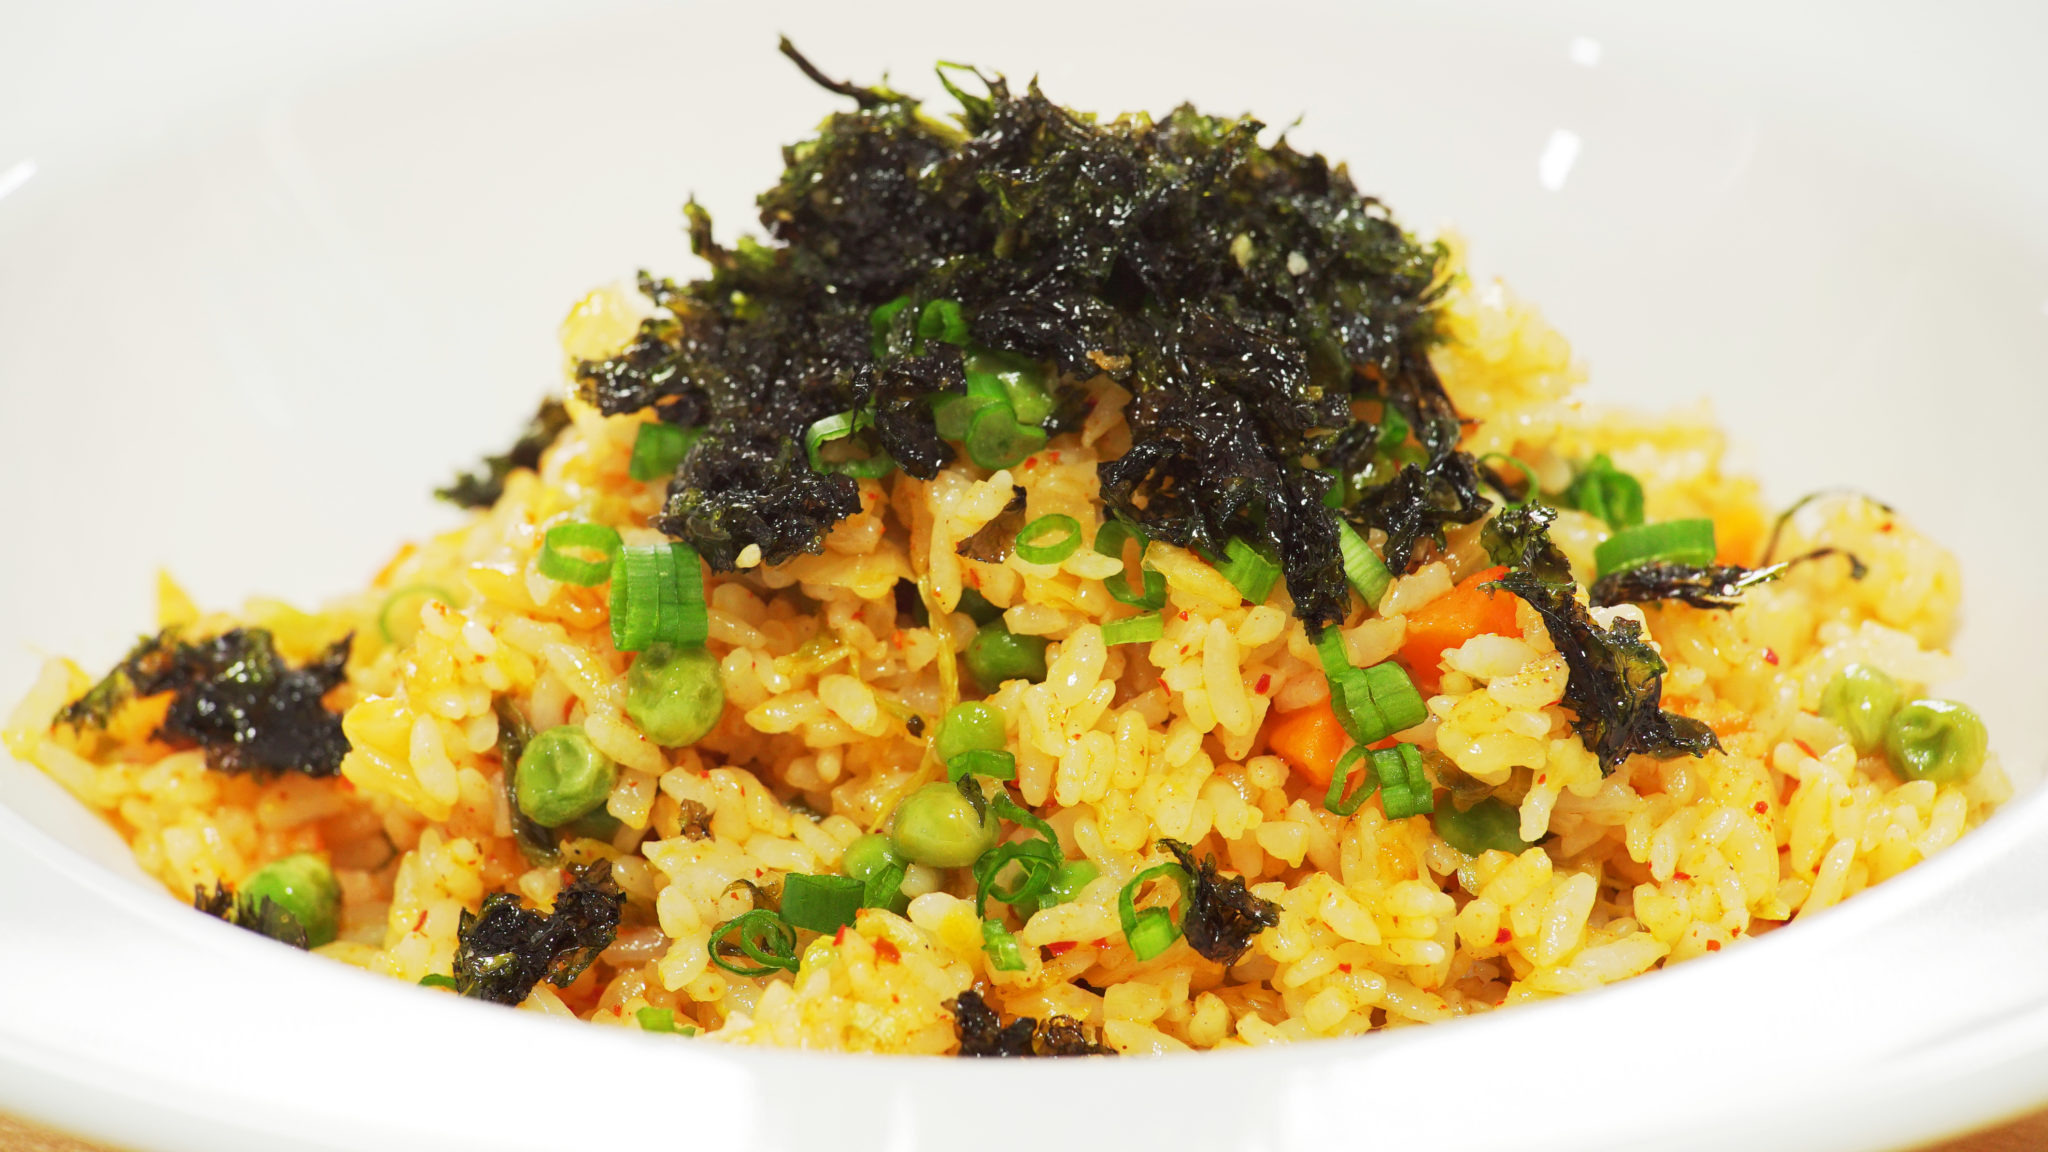 Kimchi Fried Rice Recipe That You Should Try